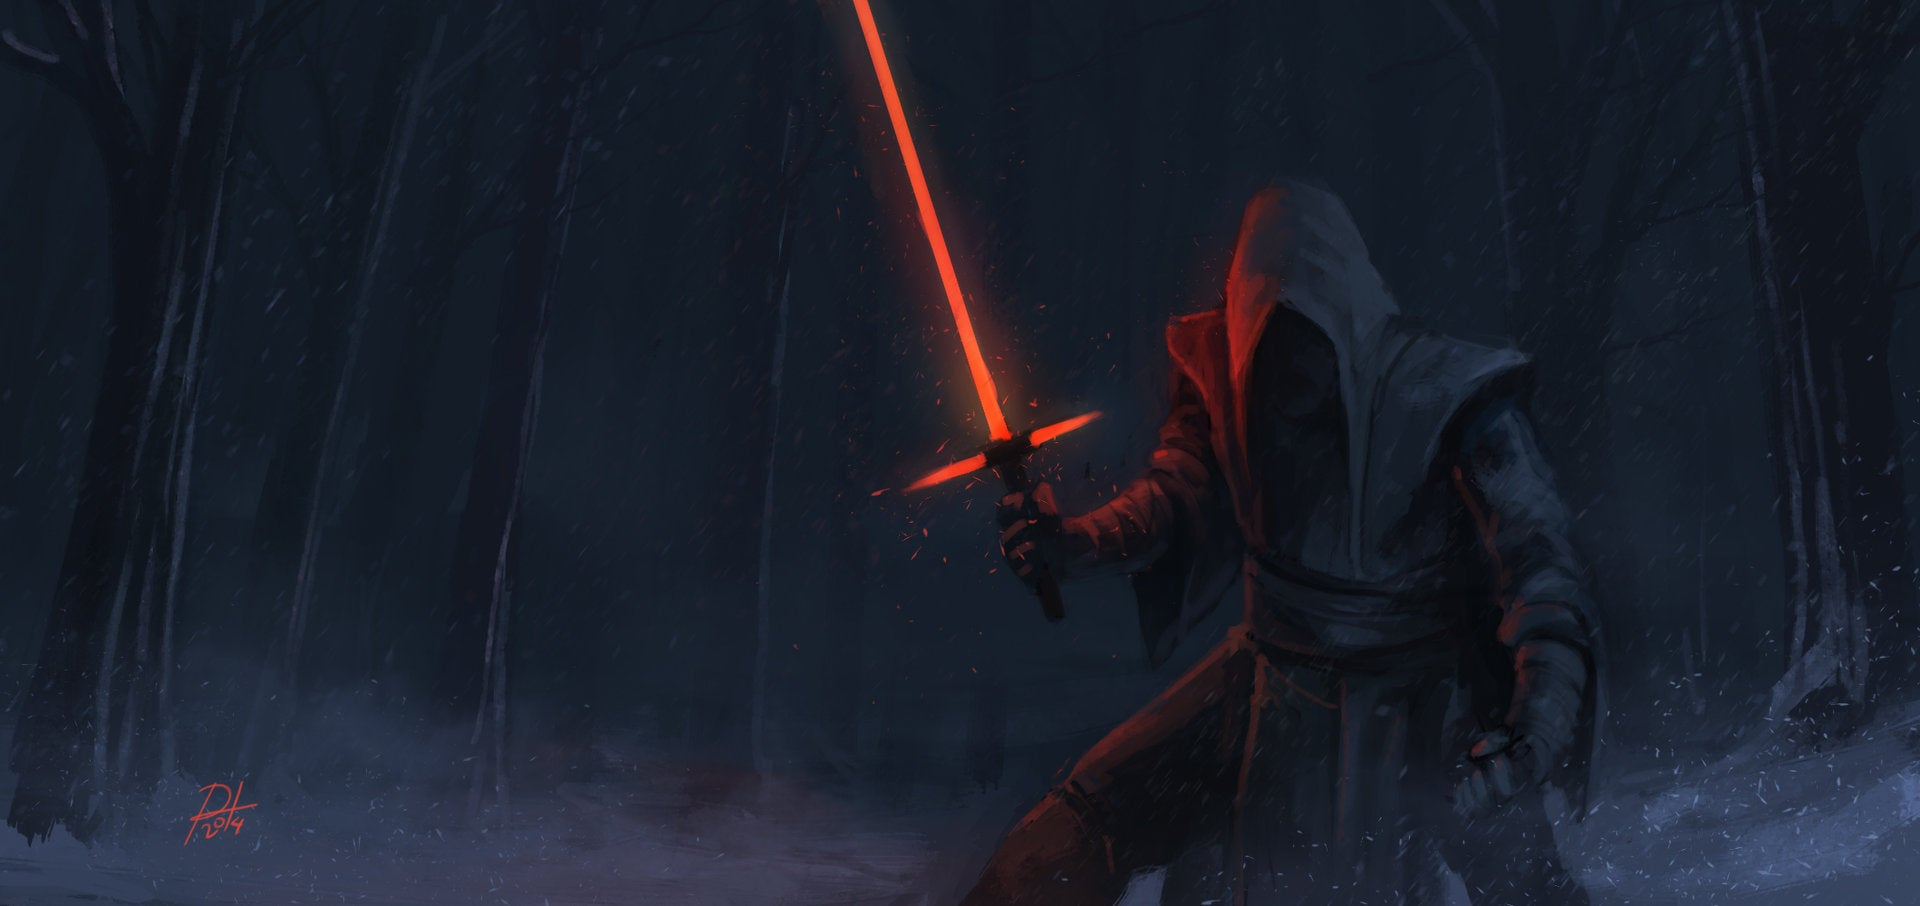 There S Already Amazing Star Wars Episode Vii Fan Art Kotaku